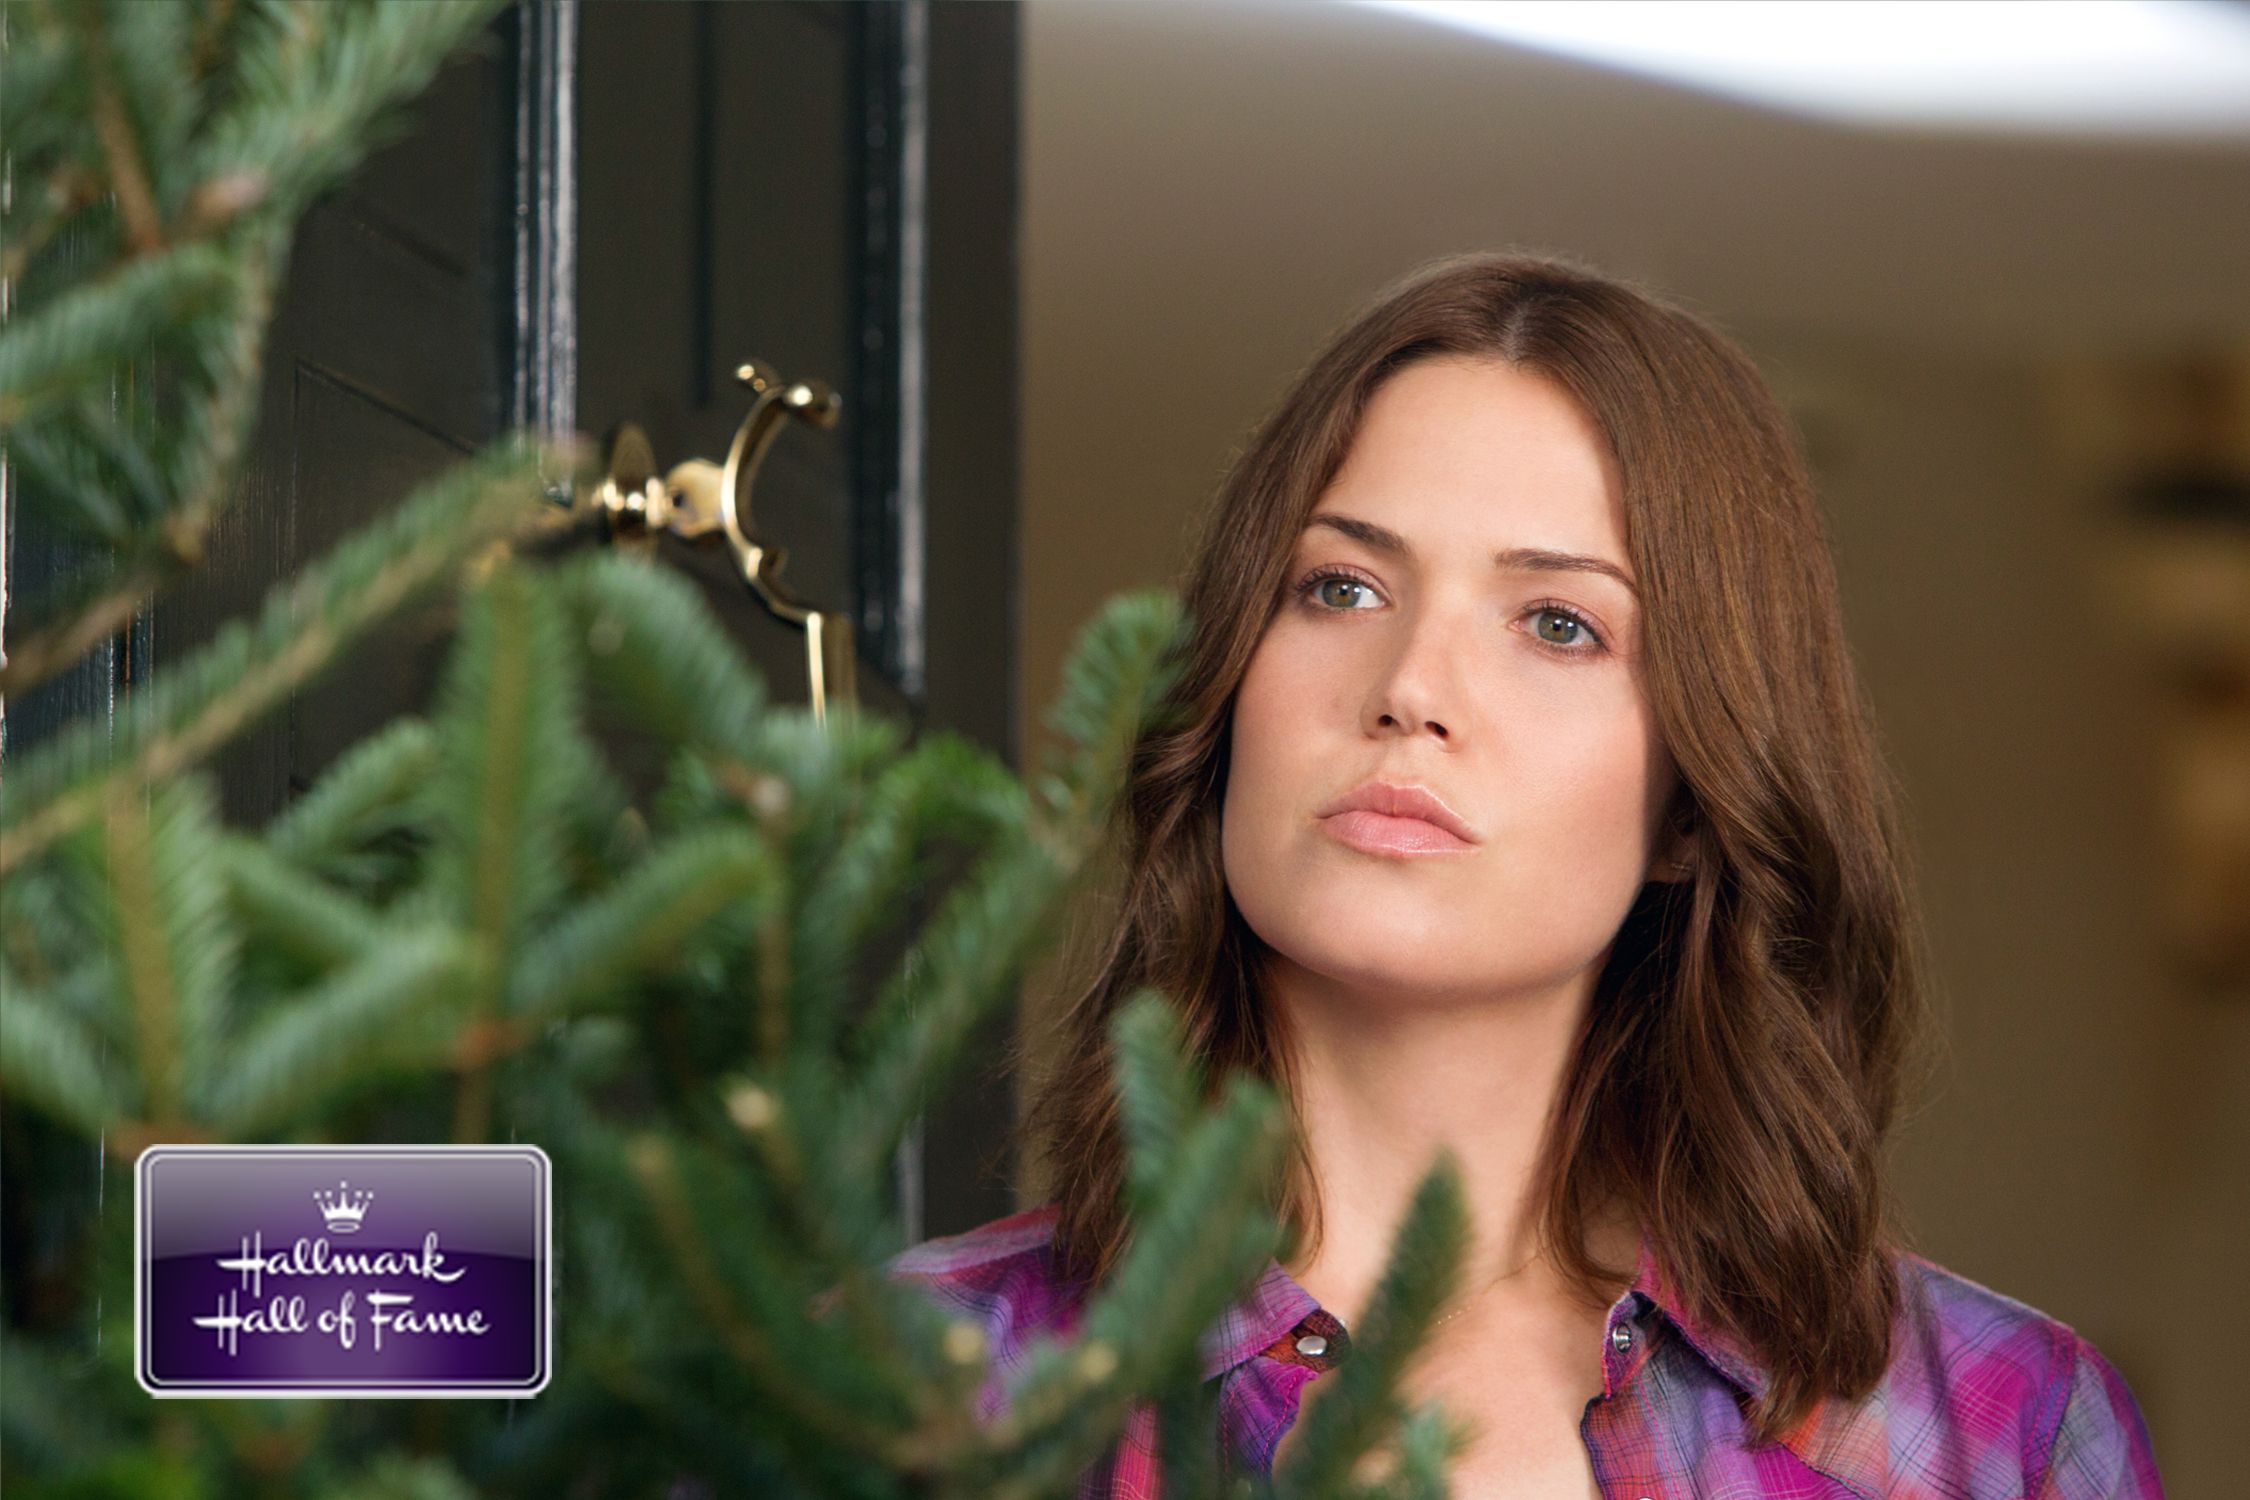 Christmas In Conway.Hallmark Hall Of Fame S Christmas In Conway Mandy Moore